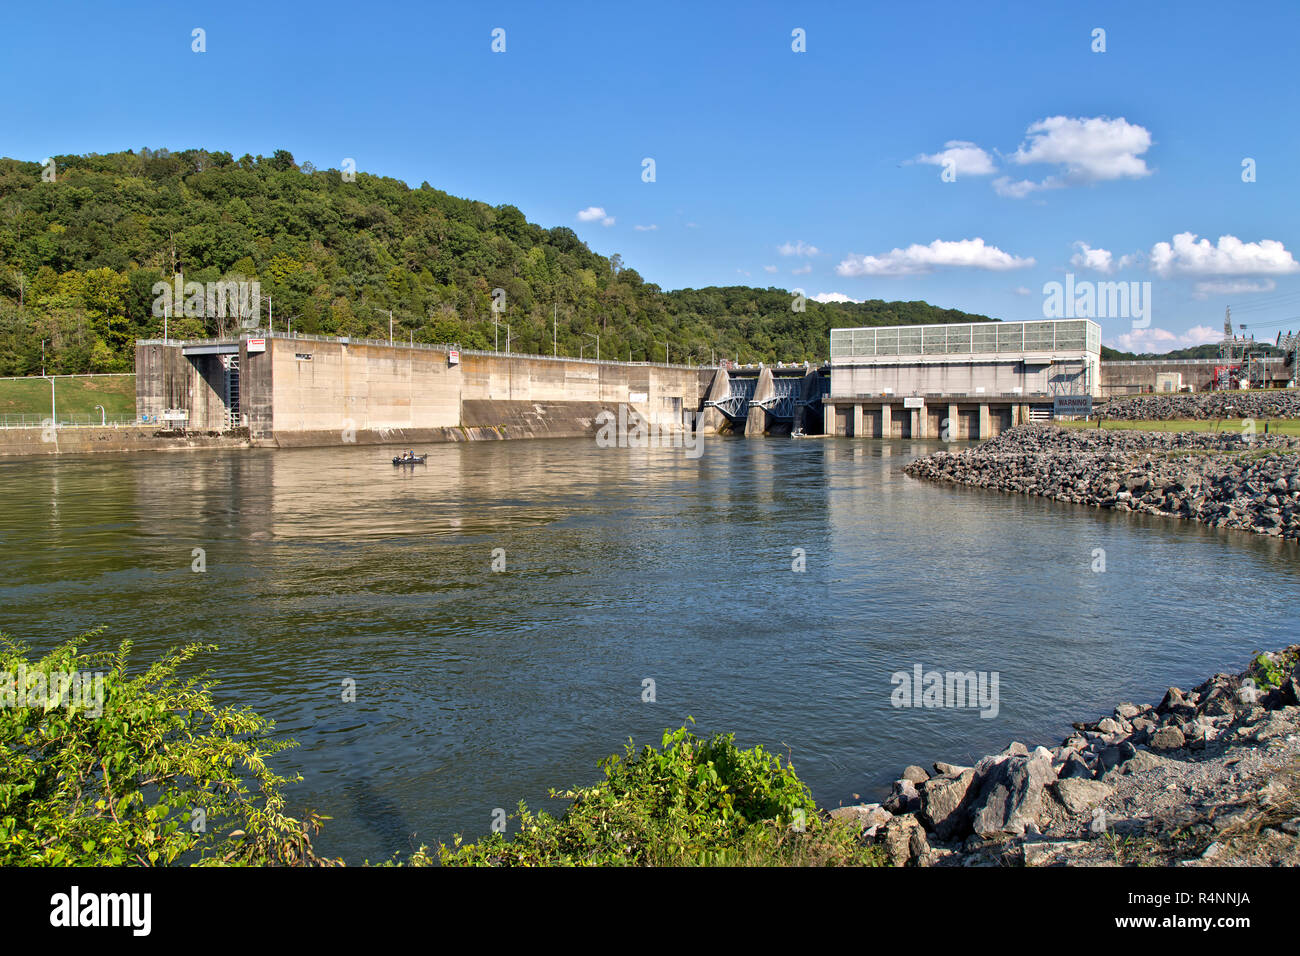 Melton Hill Hydroelectric Dam & Power Station. Melton Hill Recreation Area,  U.S. Army Corps Of Engineers. - Stock Image